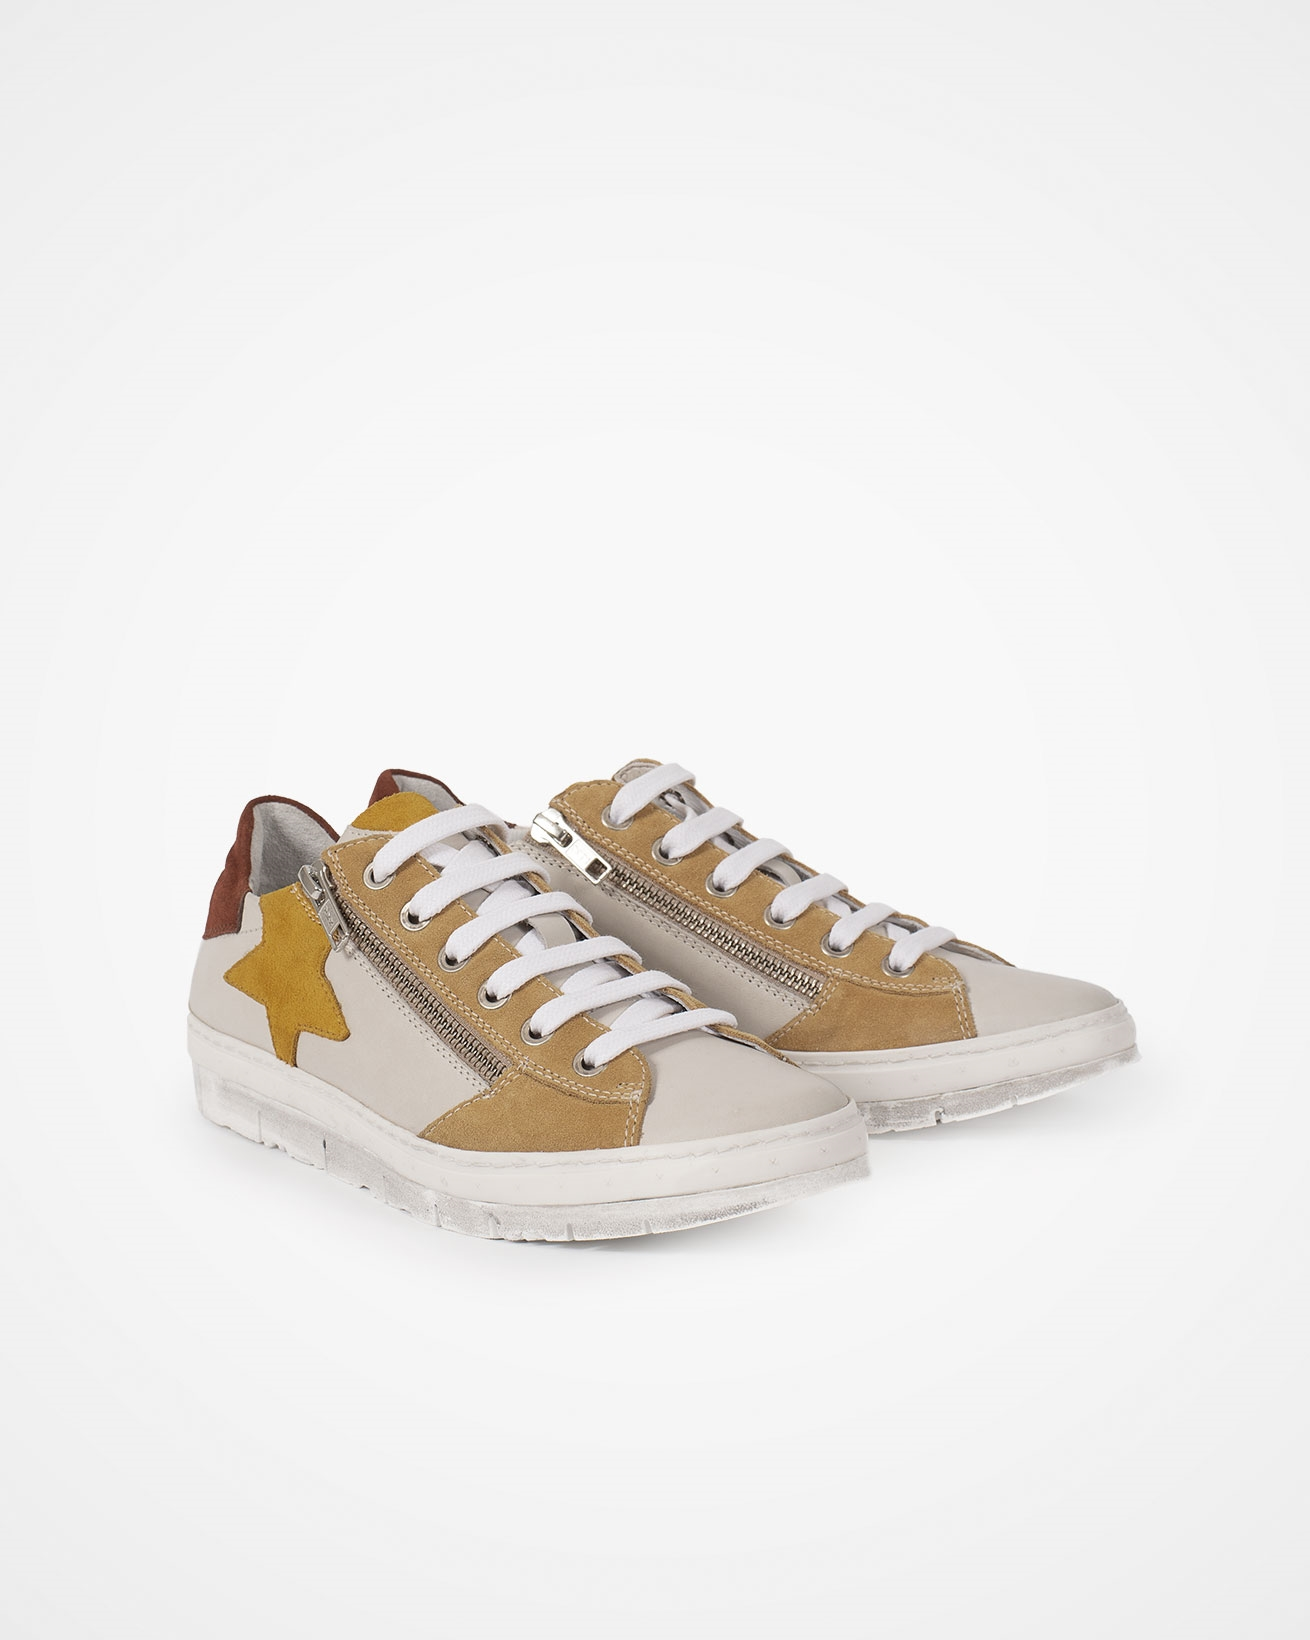 7587_embellished-trainers_gorse_pair.jpg